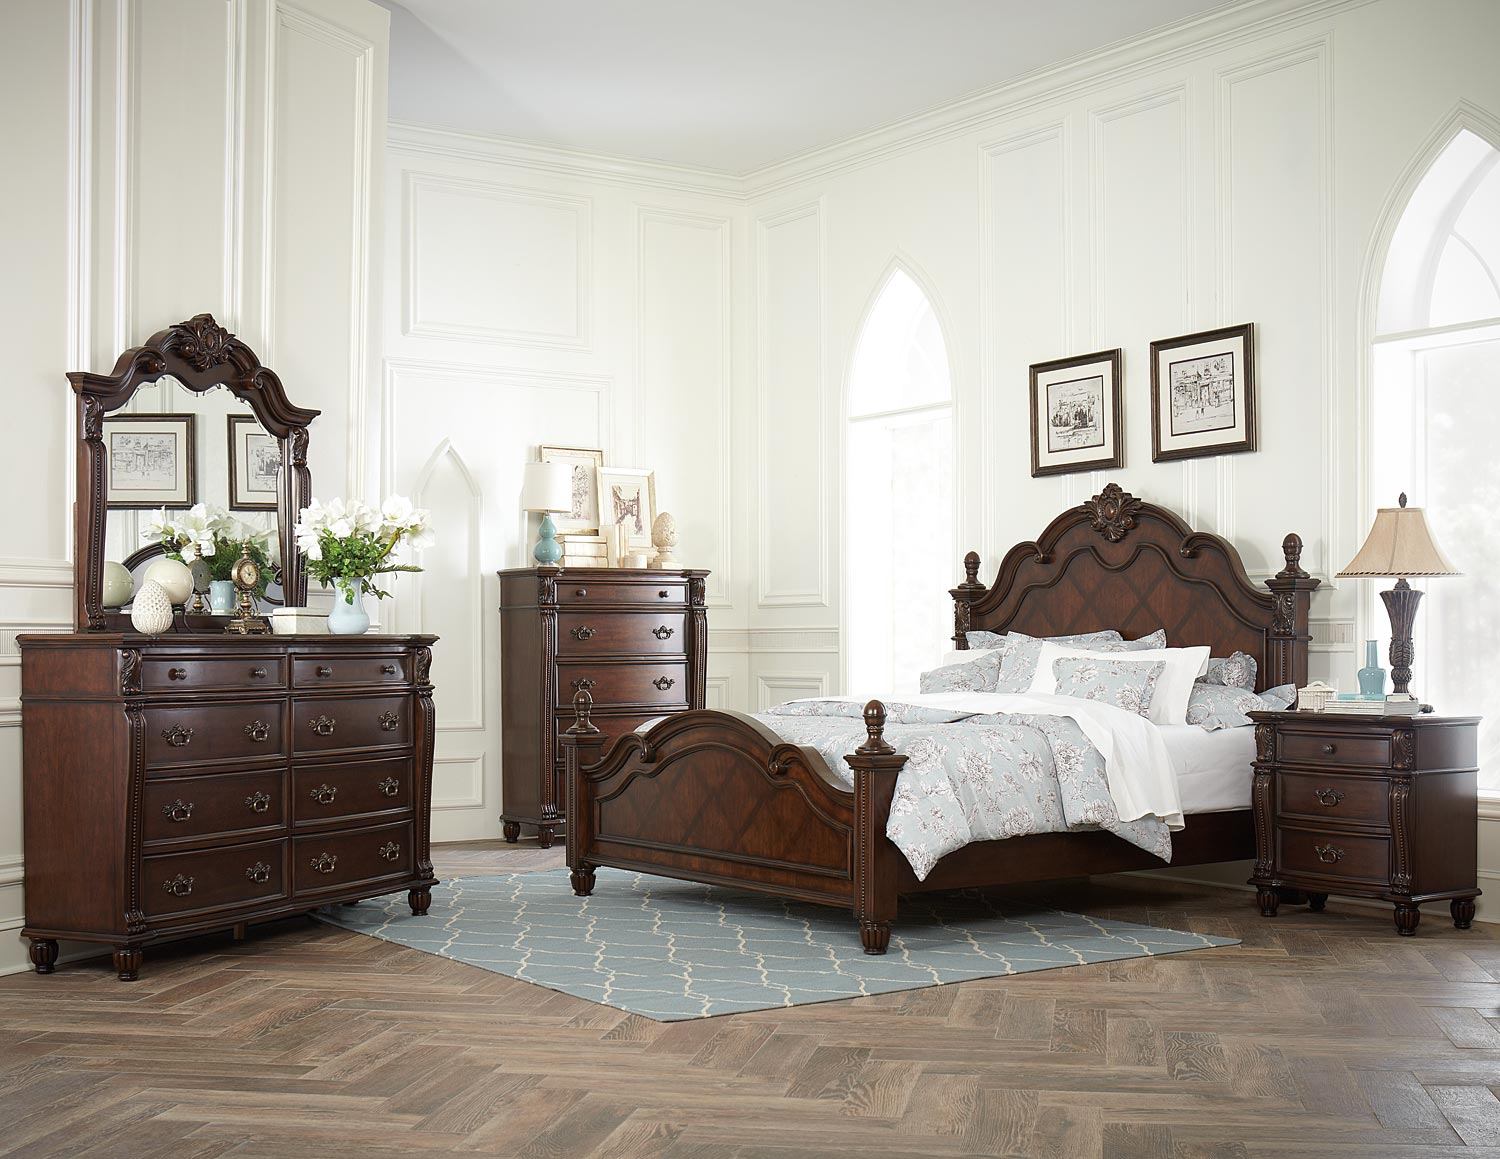 Homelegance Hadley Row Bedroom Set Cherry 1802 Bed Set at Homelement